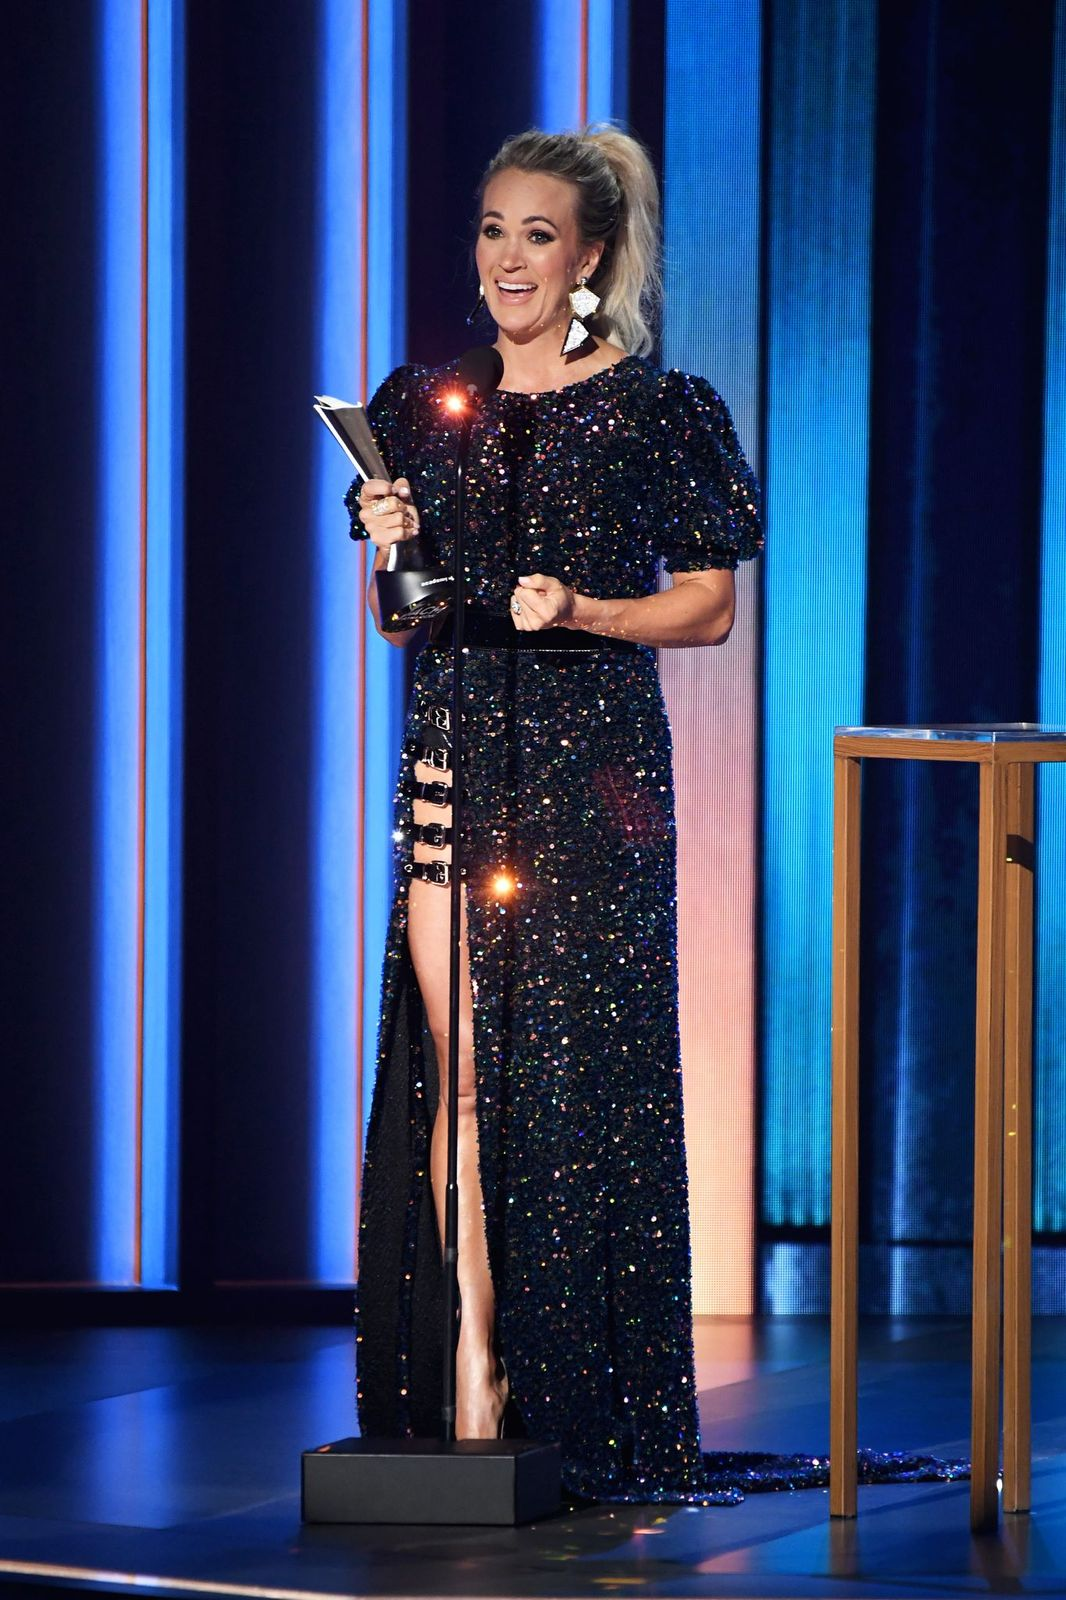 Carrie Underwood accepts the Entertainer of the Year Award at the 55th Academy of Country Music Awards on September 16, 2020, in Nashville, Tennessee | Photo: Kevin Mazur/ACMA2020/Getty Images